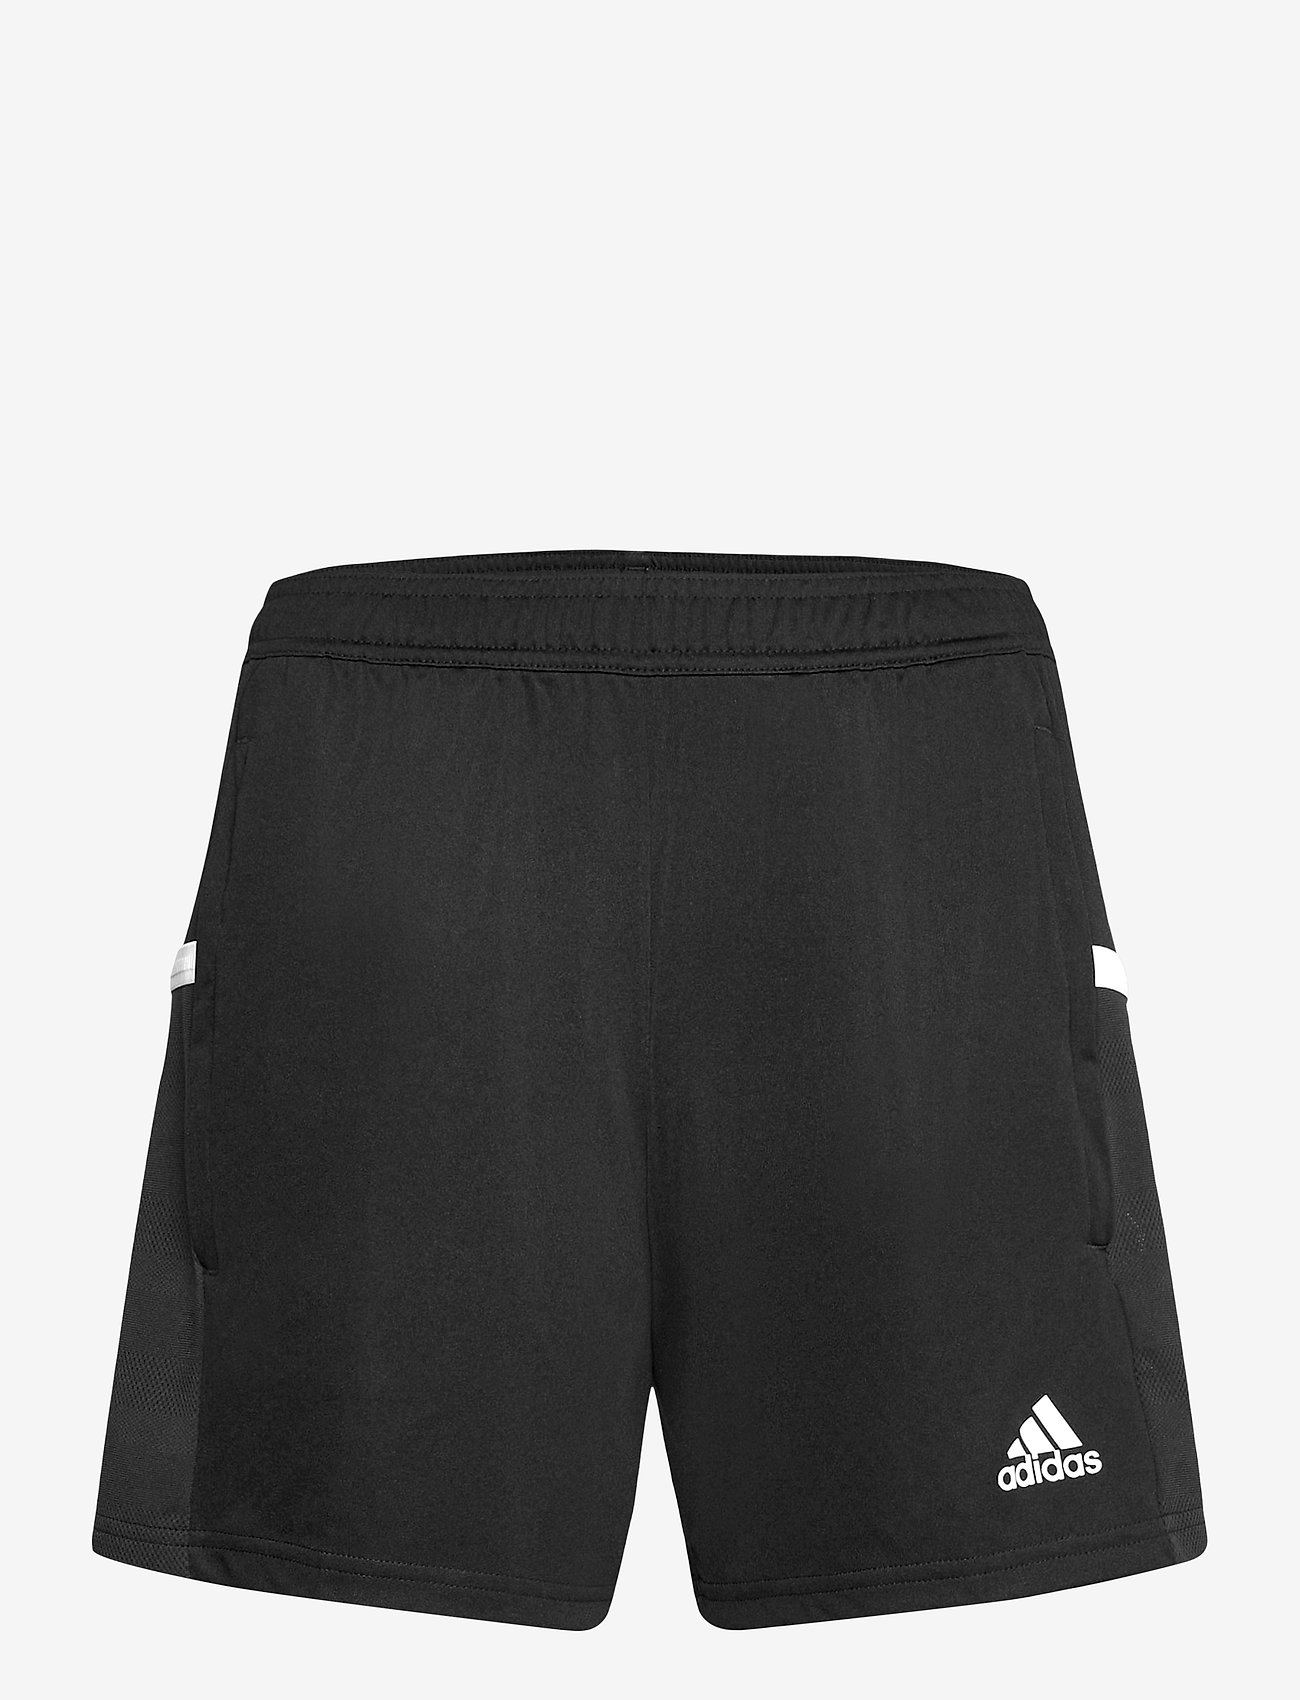 adidas Performance - Team 19 3-Pocket Shorts W - training korte broek - black/white - 0